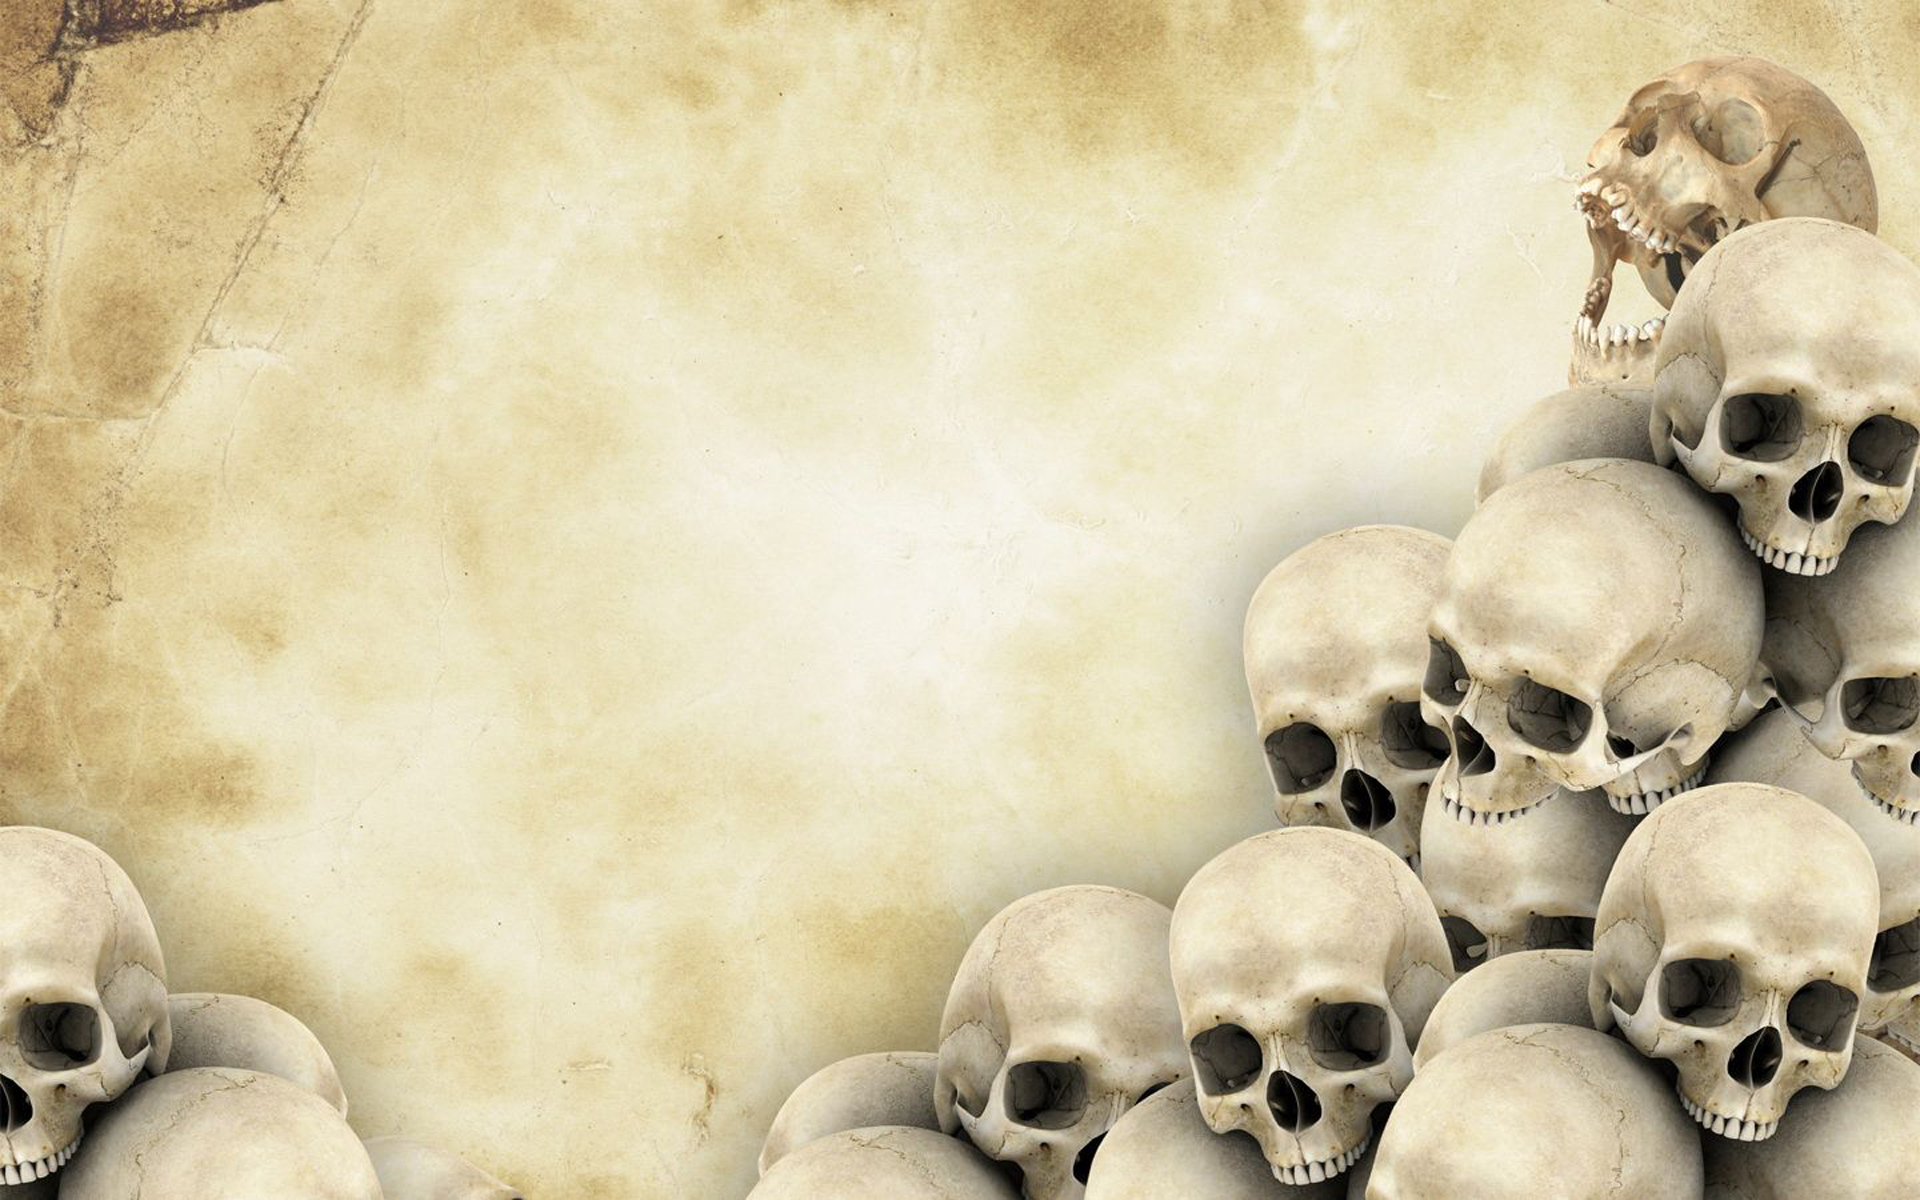 skull background , background, texture, photo, skulls on paper texture background